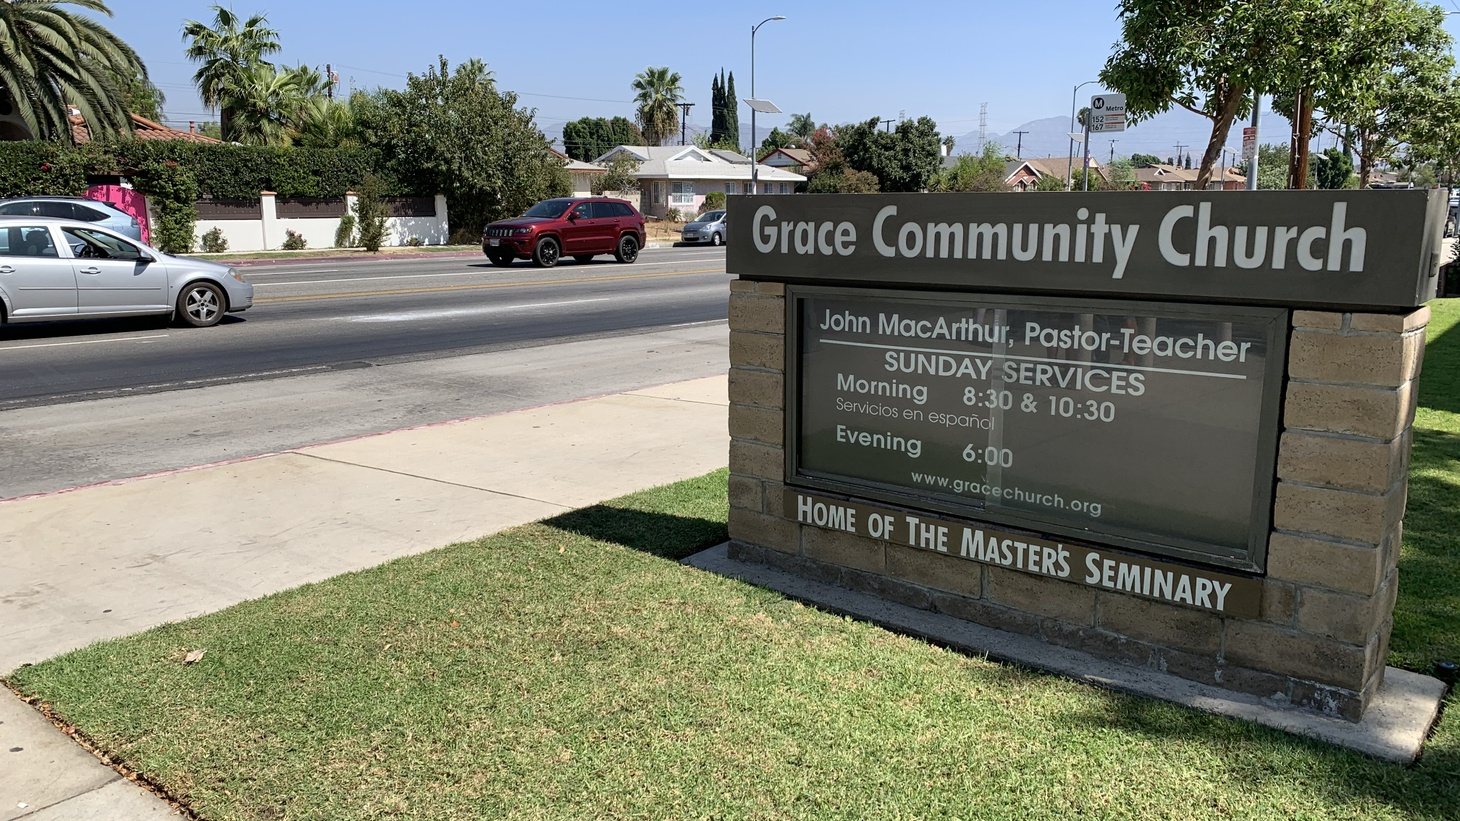 Grace Community Church is located in Sun Valley, California. Since July, there have been indoor, in-person services on weekdays and Sundays, despite public health officials ordering residents to wear masks and practice social distancing.